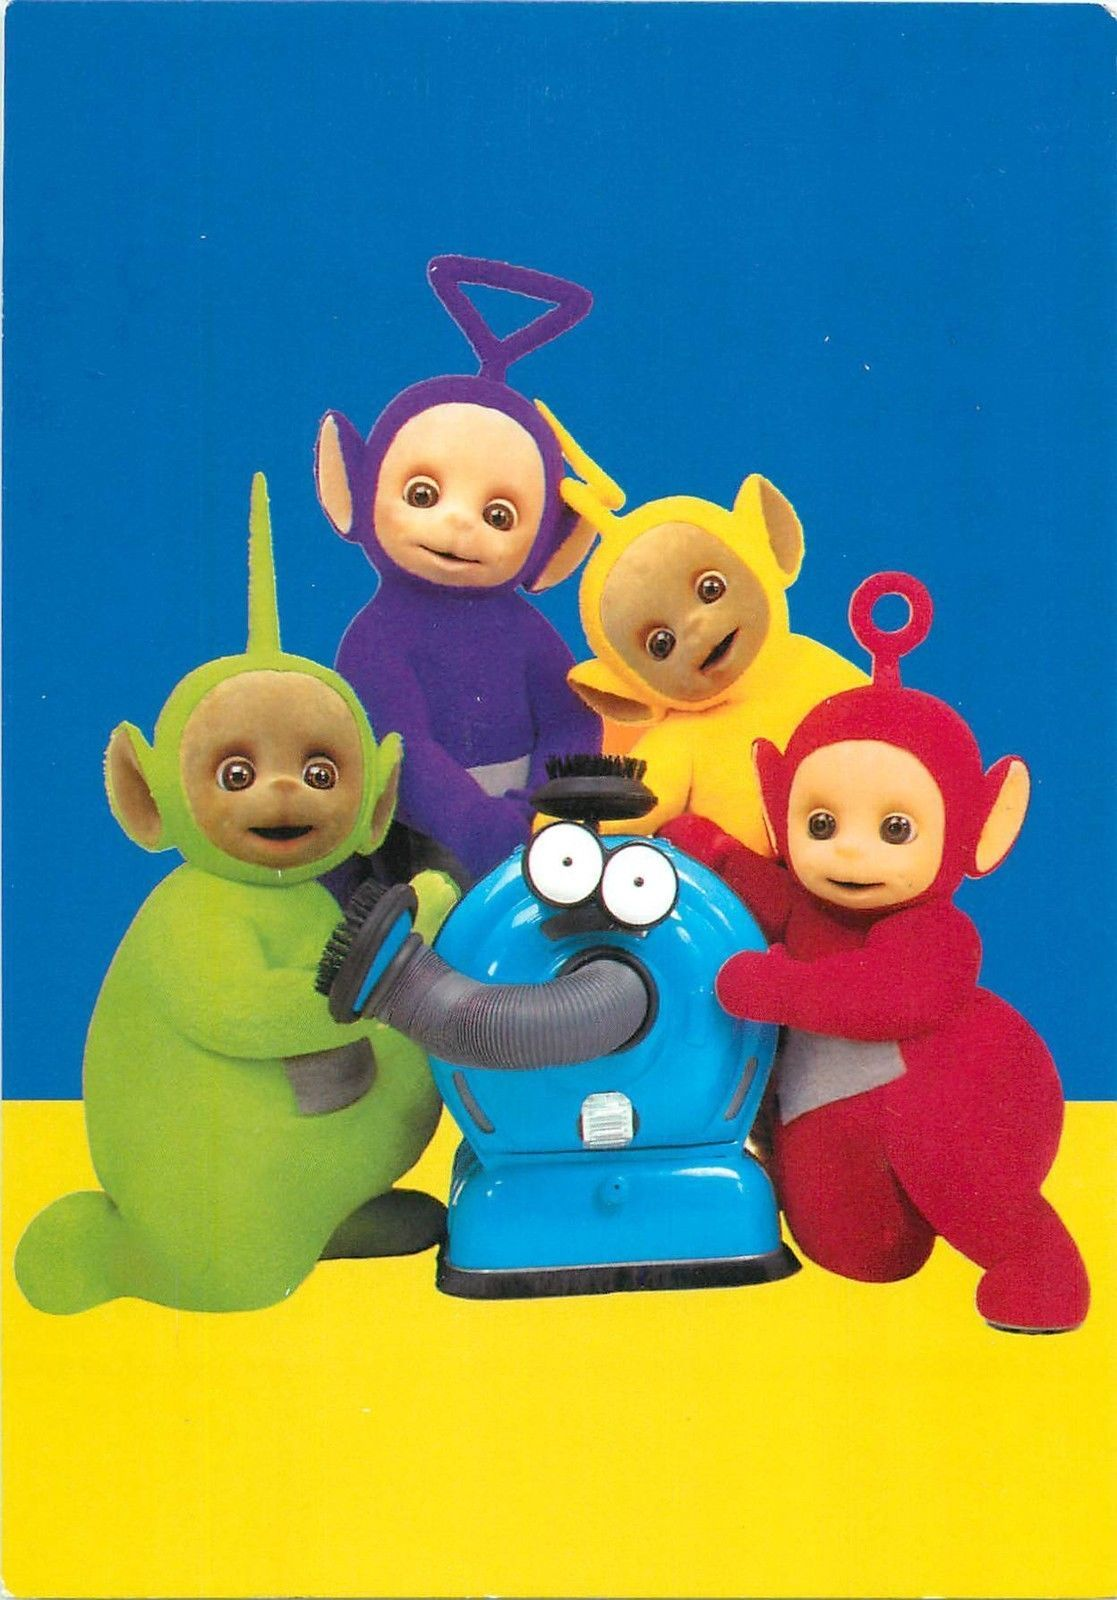 Teletubbies Characters And Noo Noo Postcard Ebay テレタビーズ